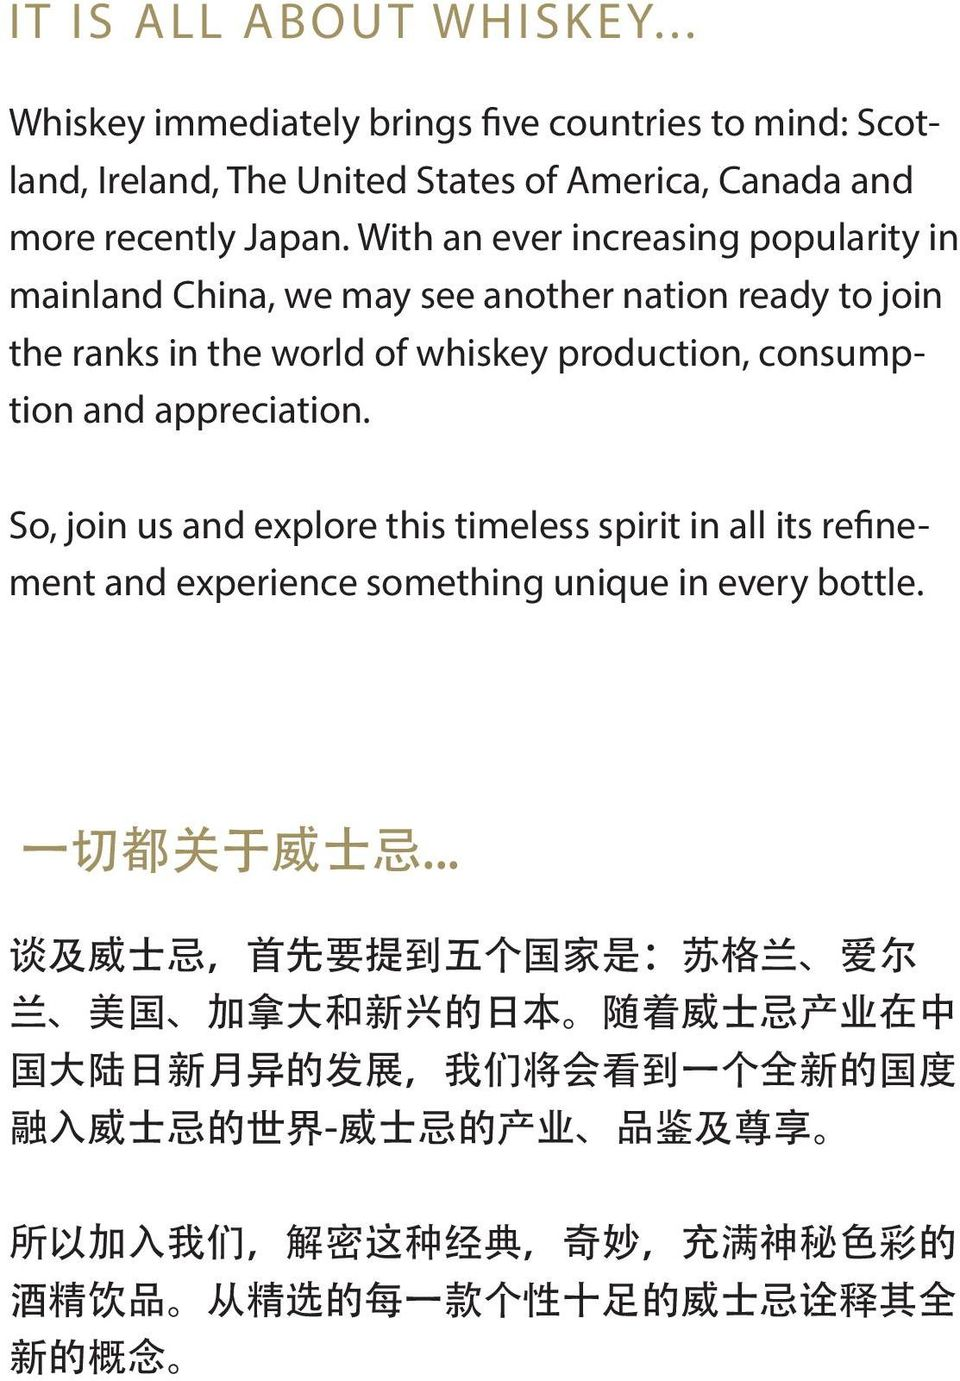 So, join us and explore this timeless spirit in all its refinement and experience something unique in every bottle. 一 切 都 关 于 威 士 忌.